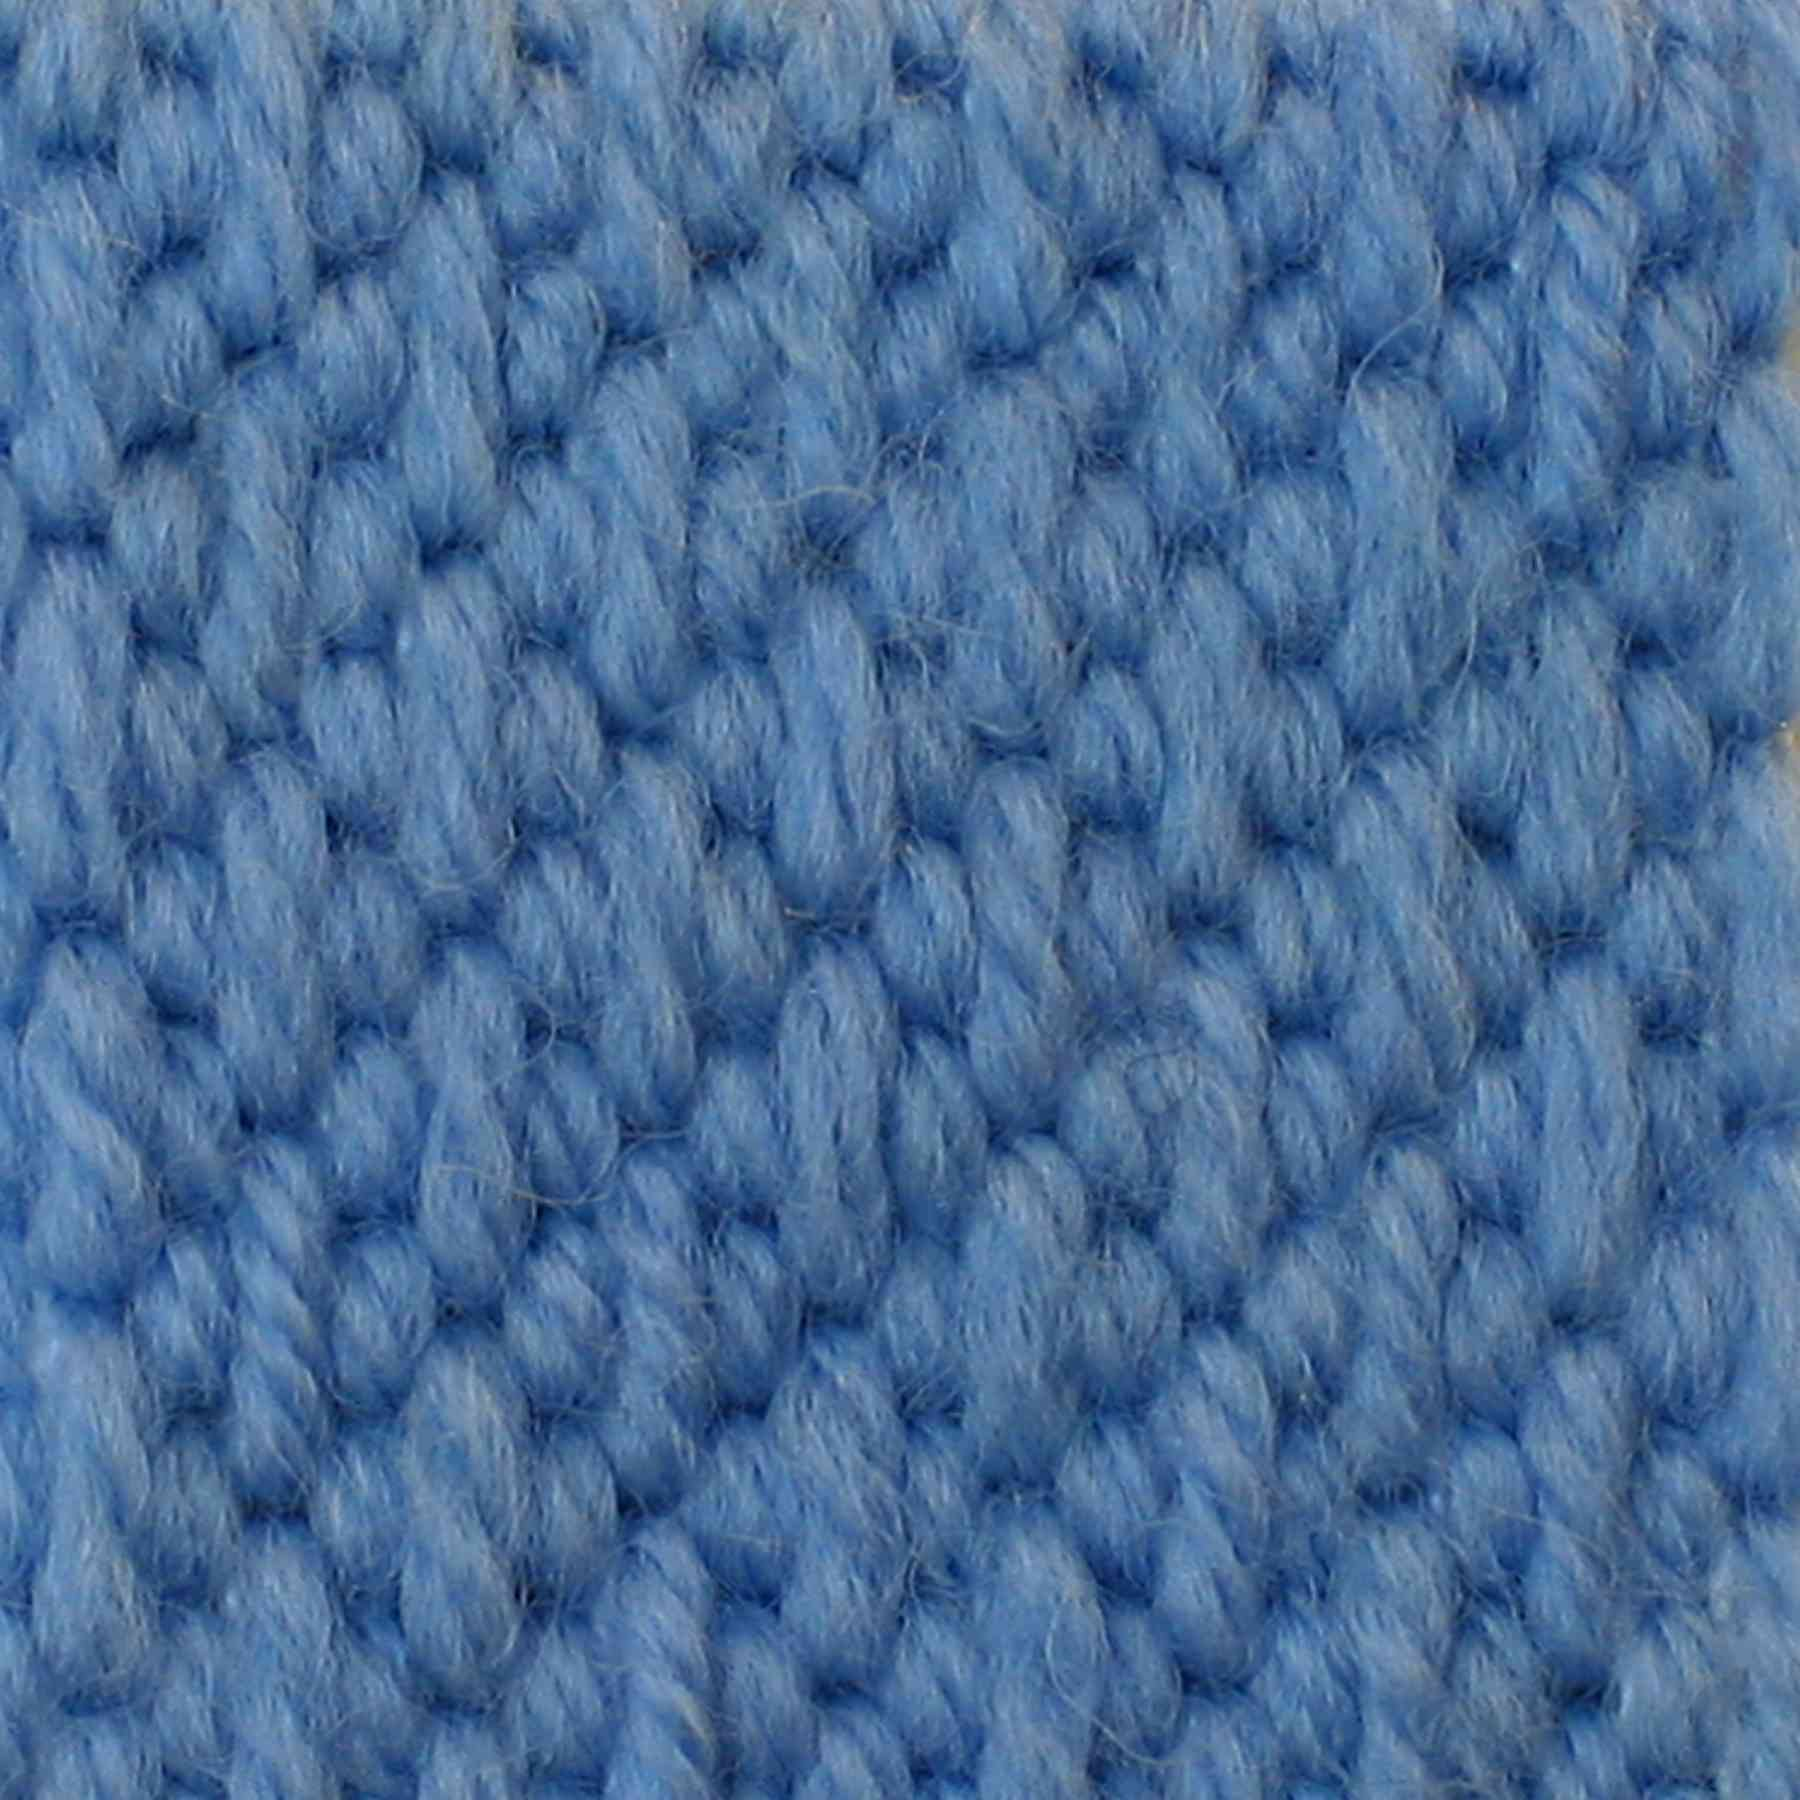 Hungarian Stitch in a Single Color